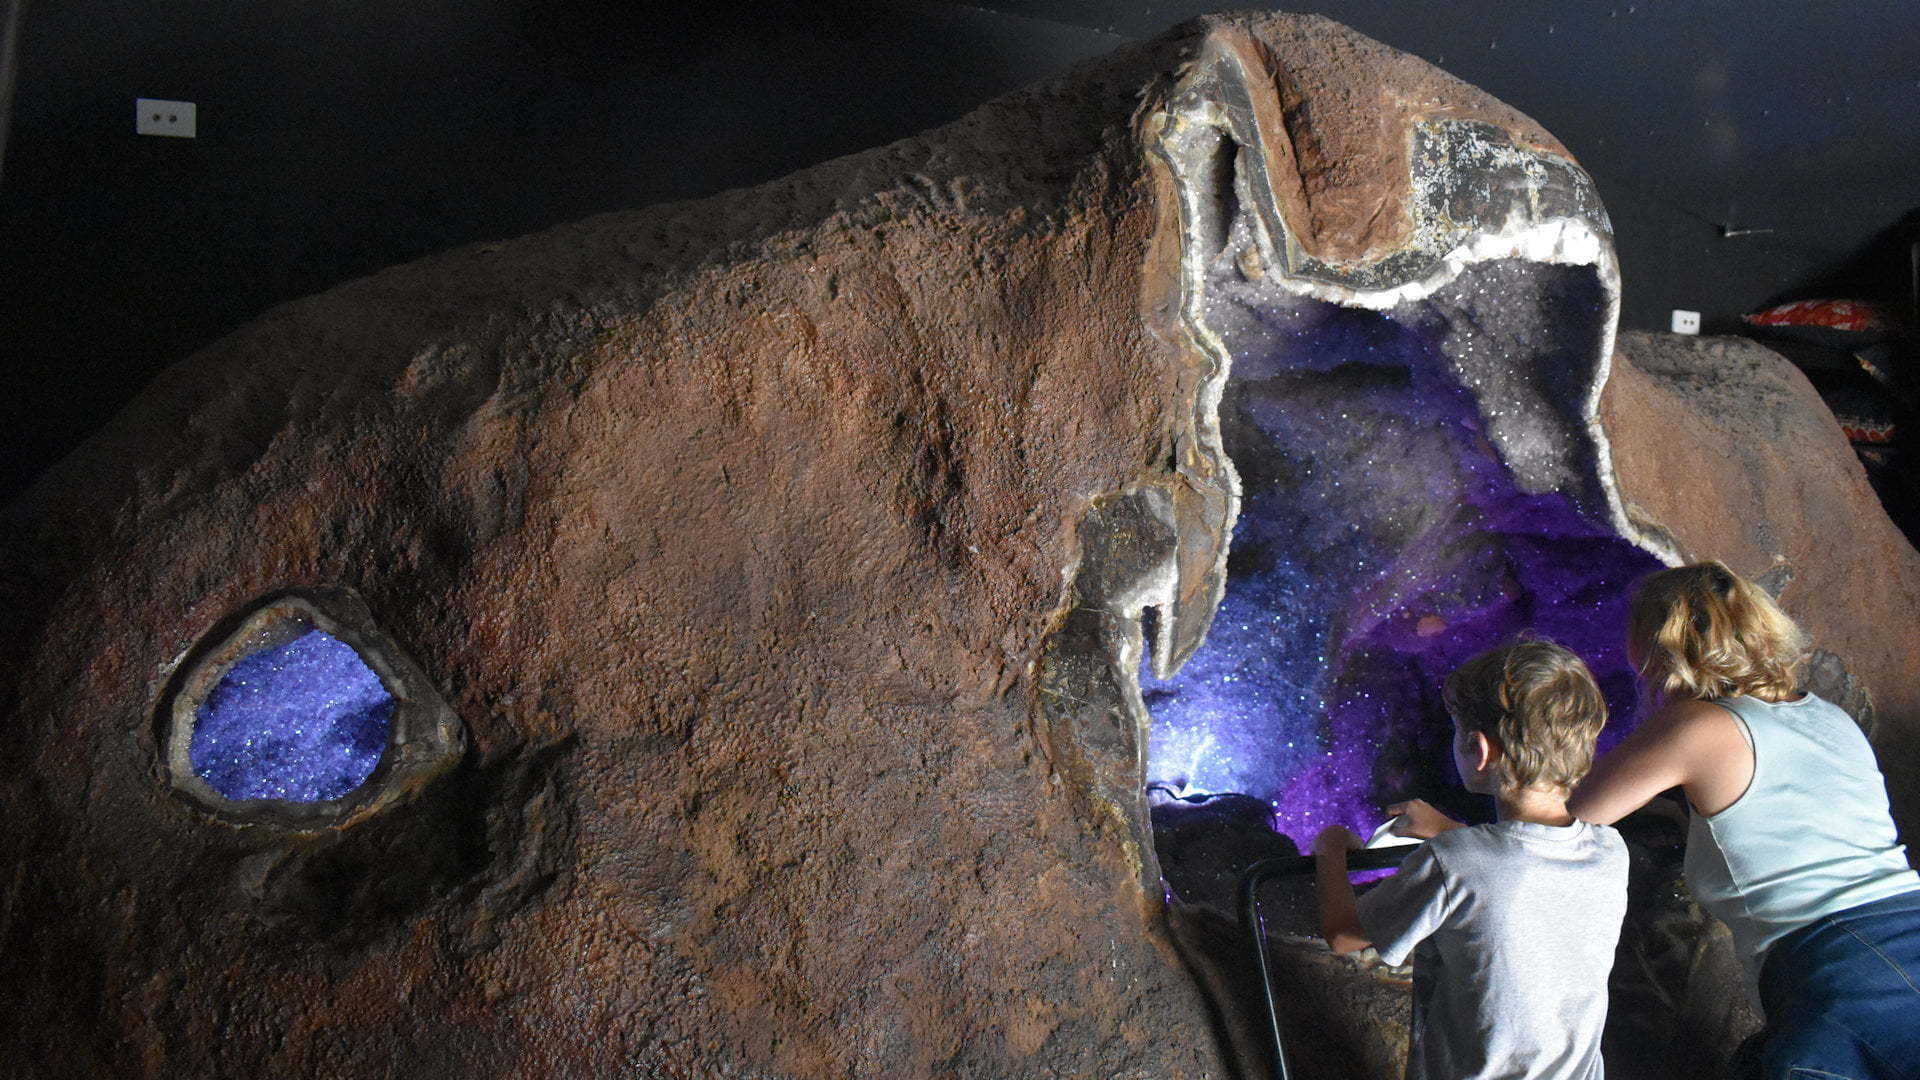 A massive amethyst geode called the Enchanted Cave at the Crystal Castle